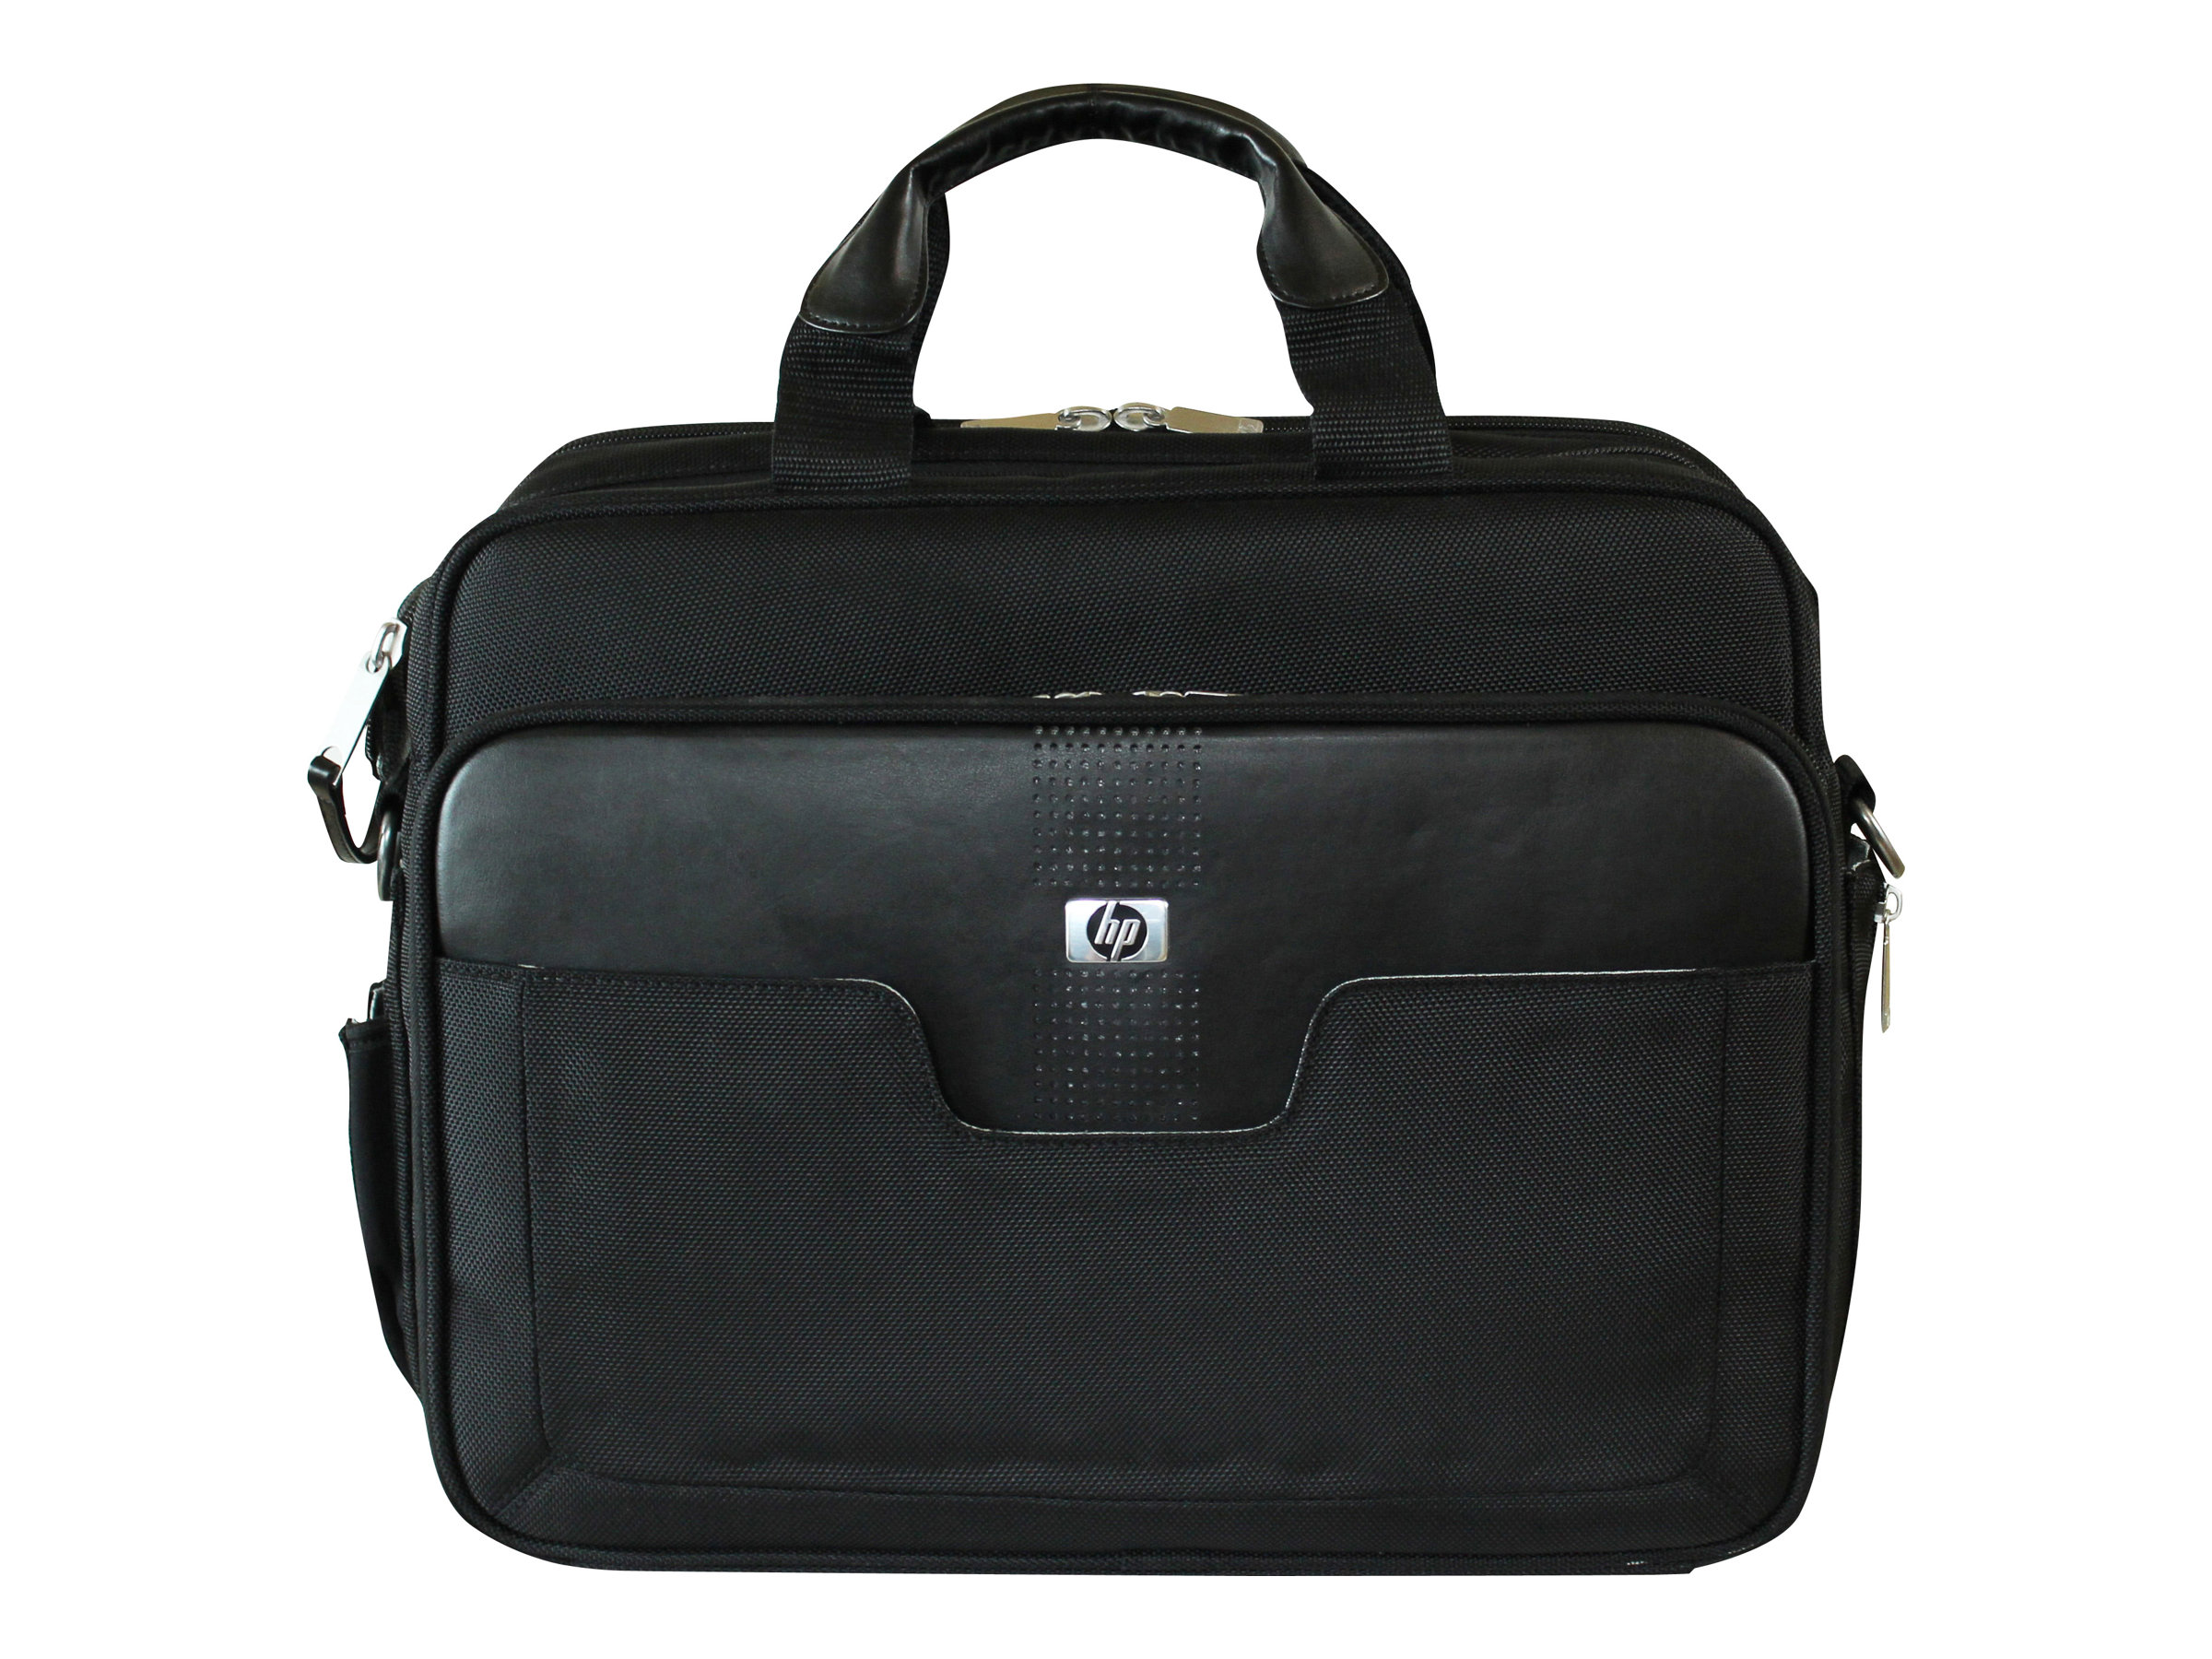 HP Mobile Printer and Notebook Case notebook / printer carrying case